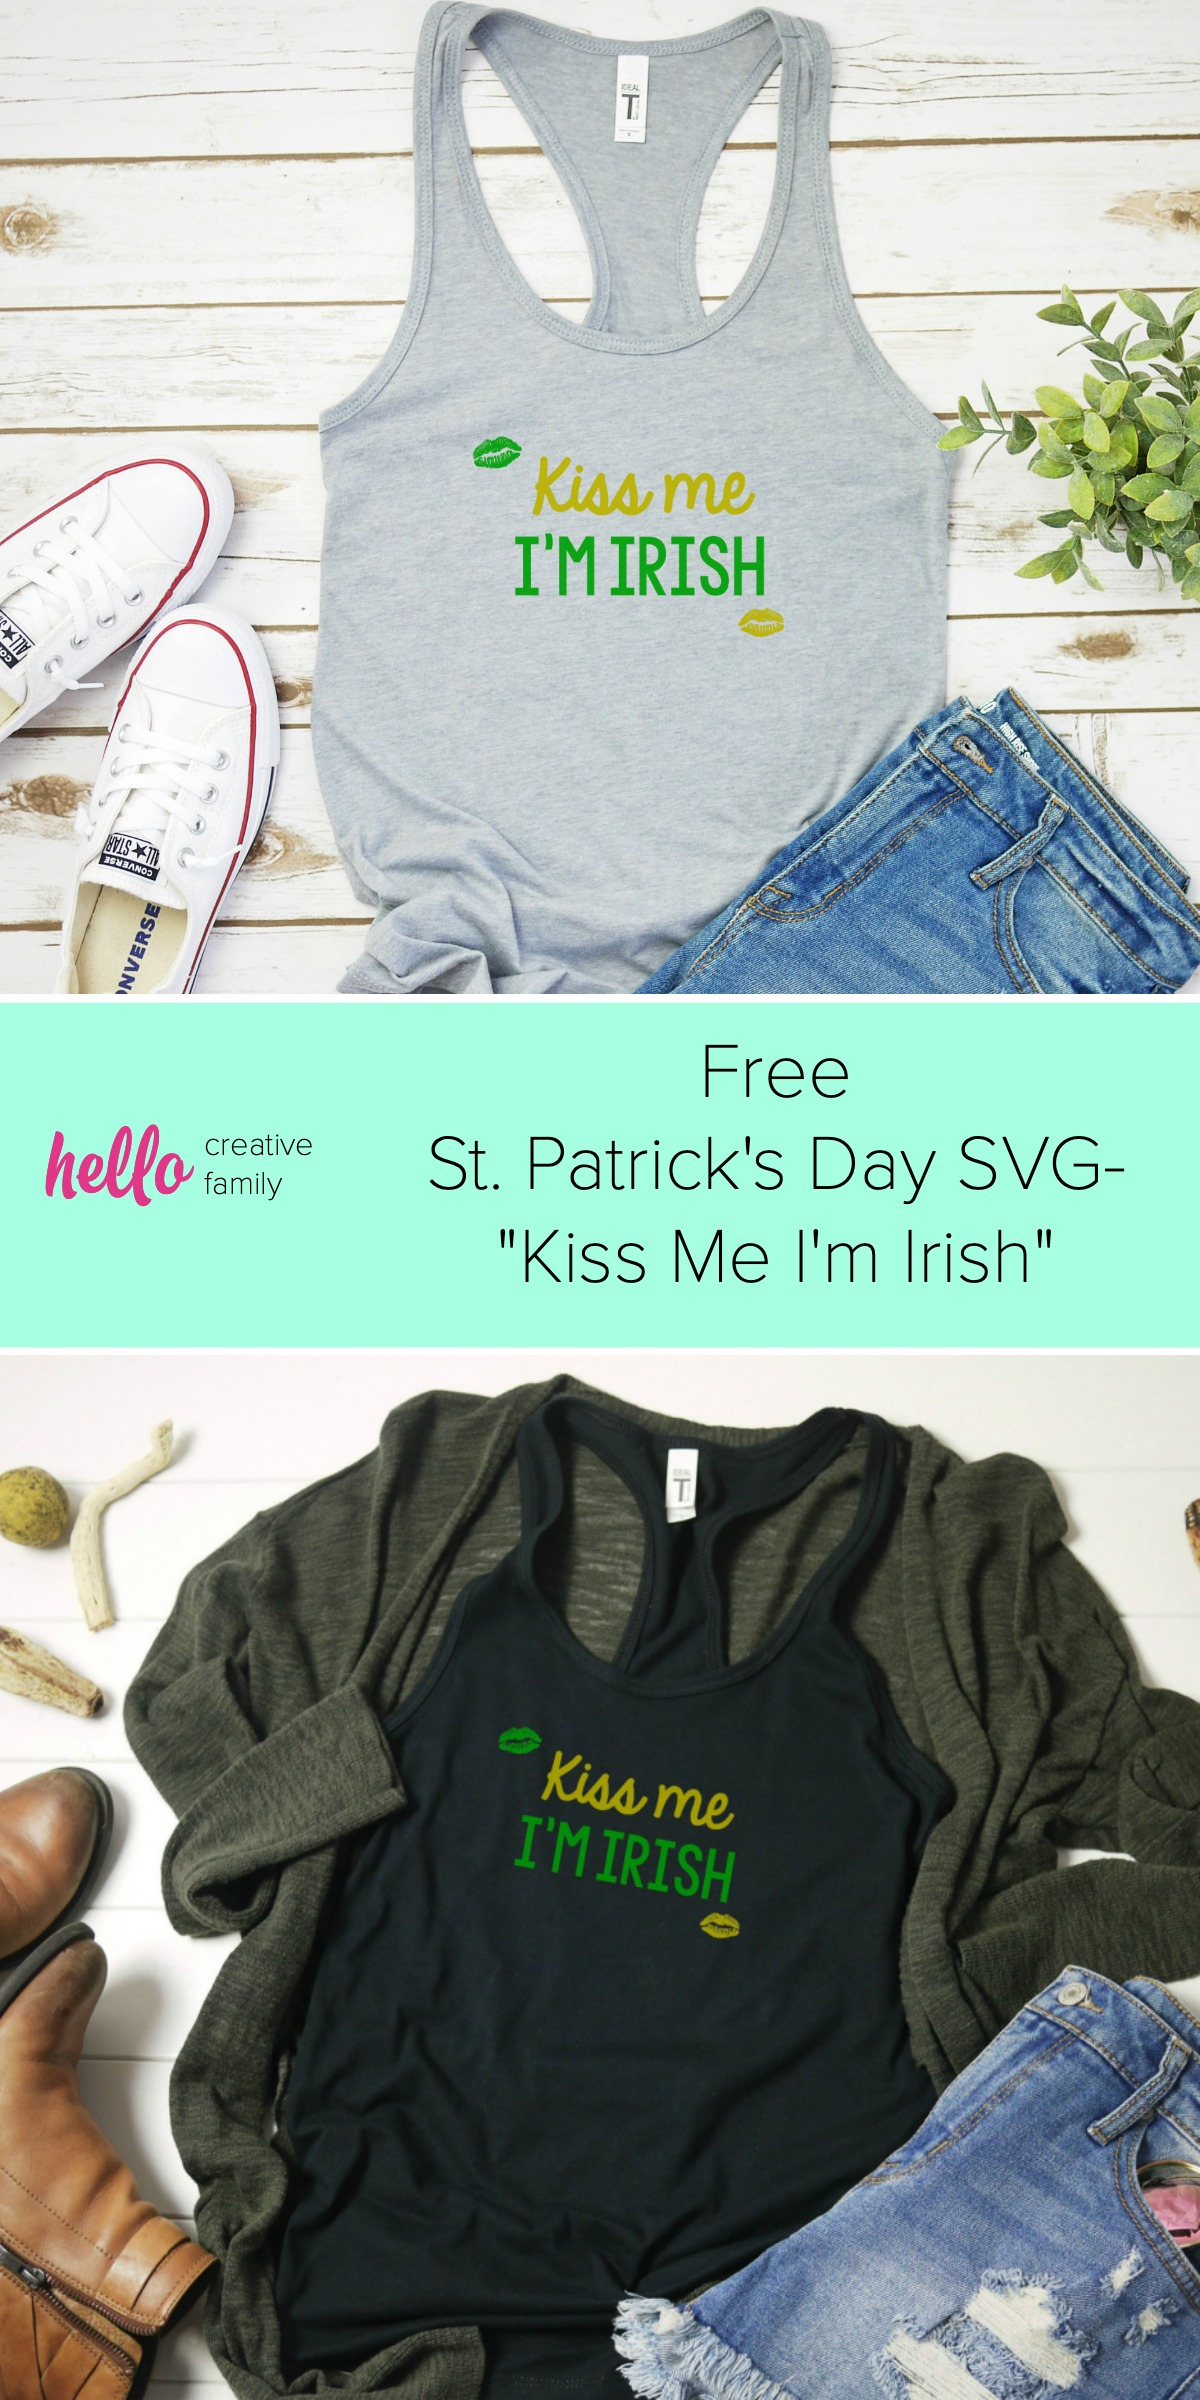 DIY your St. Patrick's Day shirt this year! Pull out your Cricut or Silhouette and get crafting with this easy idea! Use our free St Patricks Day SVG File to cut your own Kiss Me I'm Irish shirt or tank top! #StPatricksDay #StPatricksDayShirt #KissMeImIrish #Cricut #Silhouette